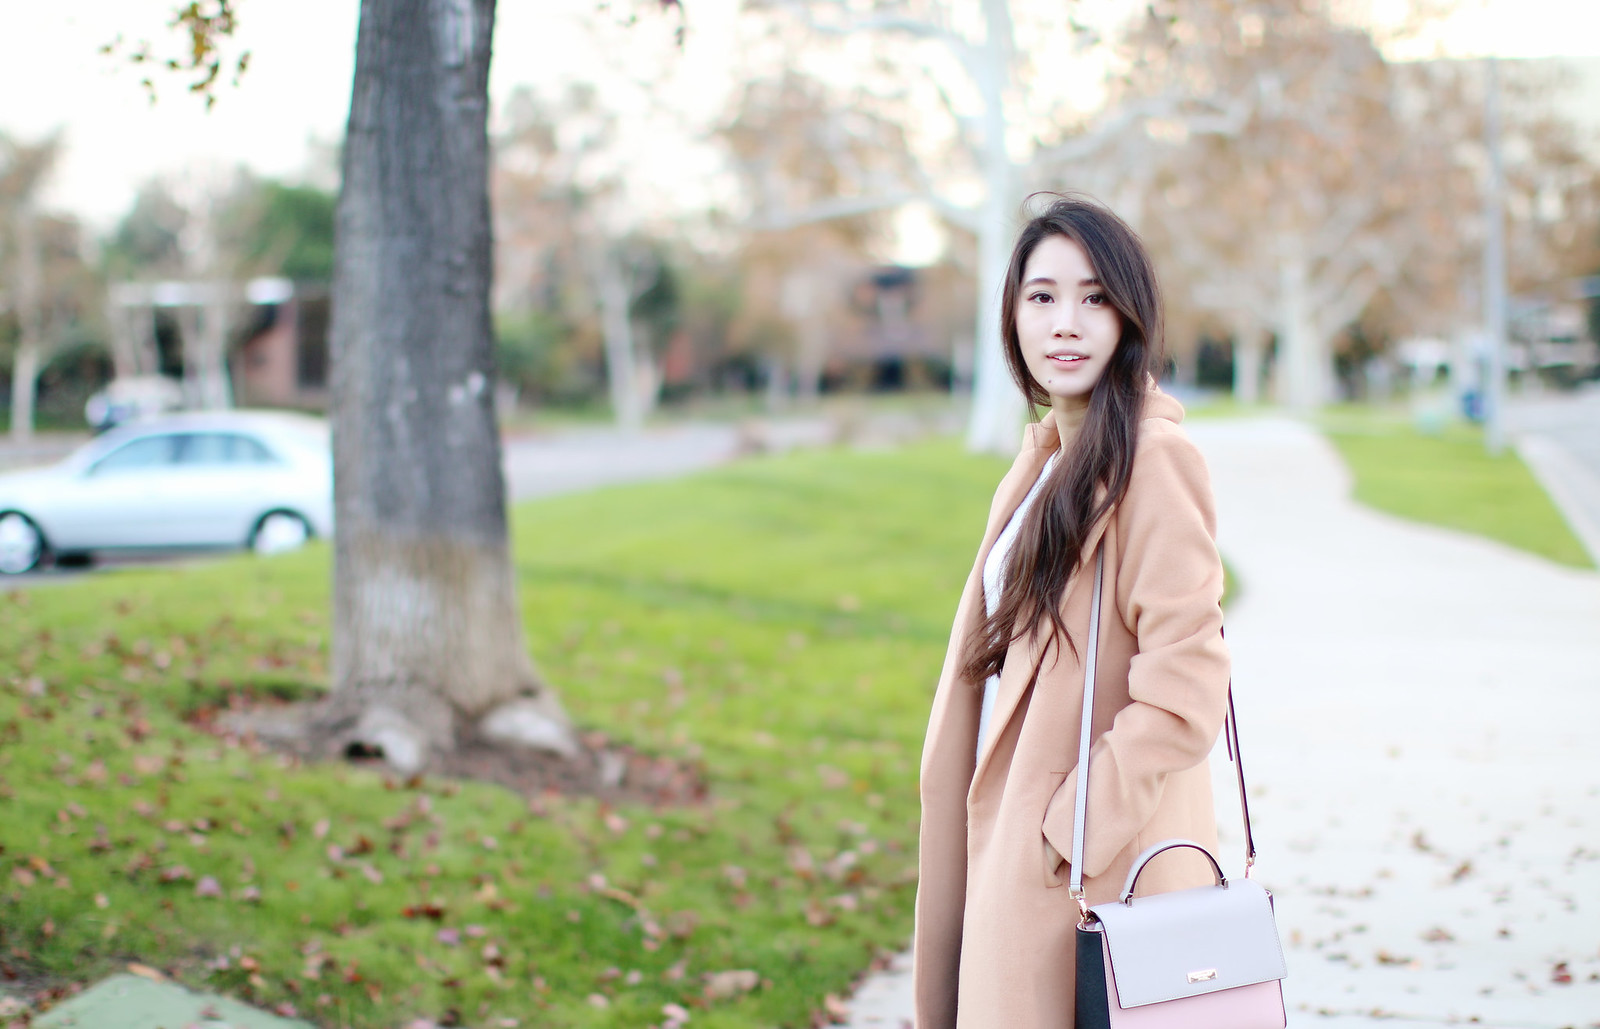 1408-ootd-fashion-fall-autumn-camel-coat-clothestoyouuu-elizabeeetht-chic-classic-timeless-koreanfashion